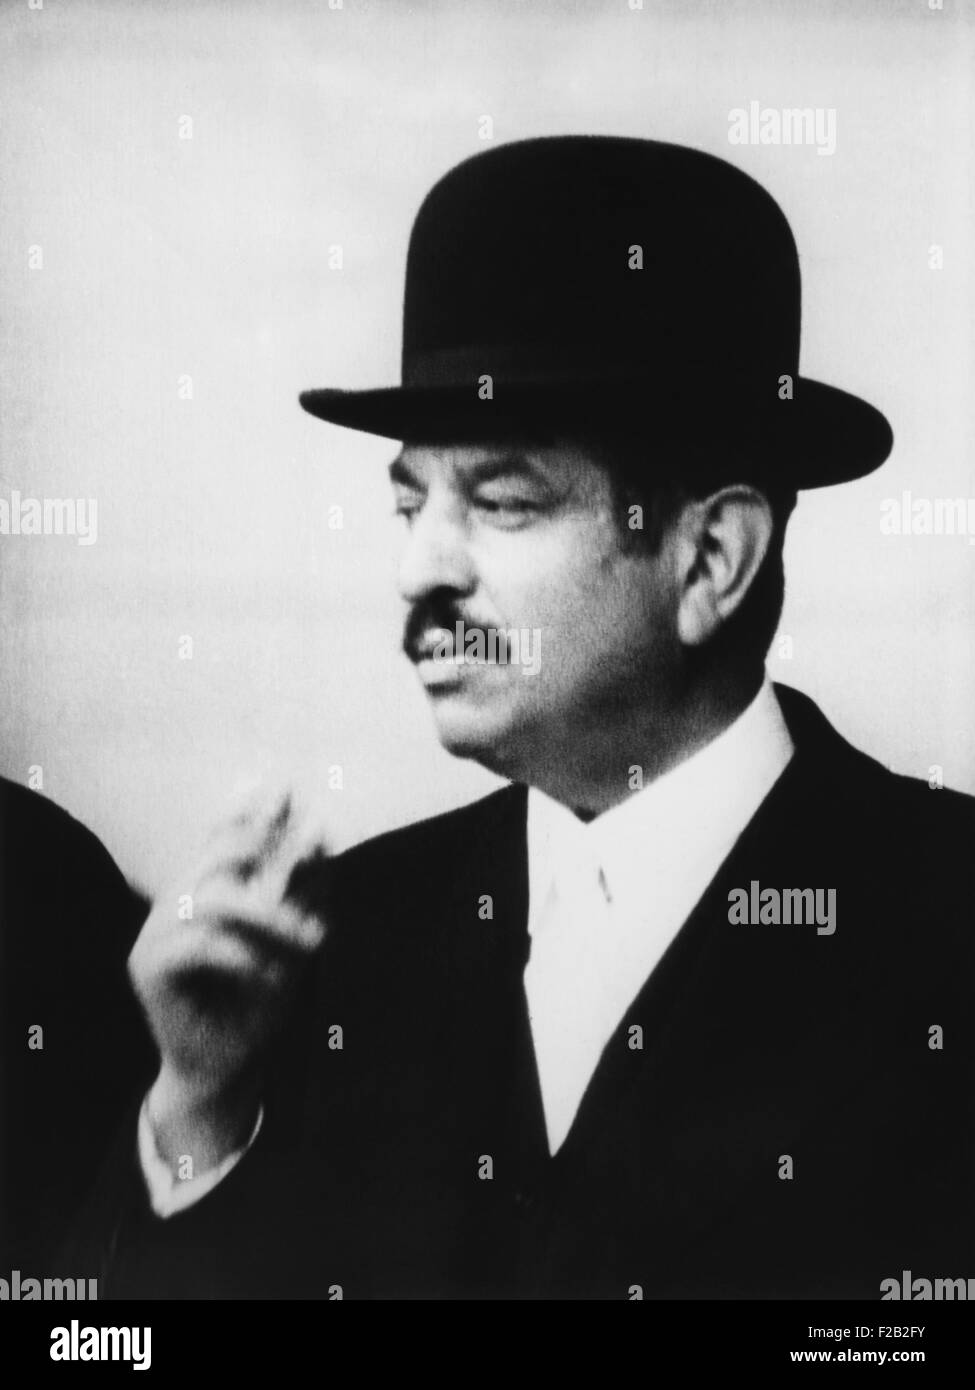 Pierre Laval, was Prime Minister of France twice, from Jan. 1931-Feb. 1932 and June 1935-Jan. 1936. (CSU_2015_8 - Stock Image